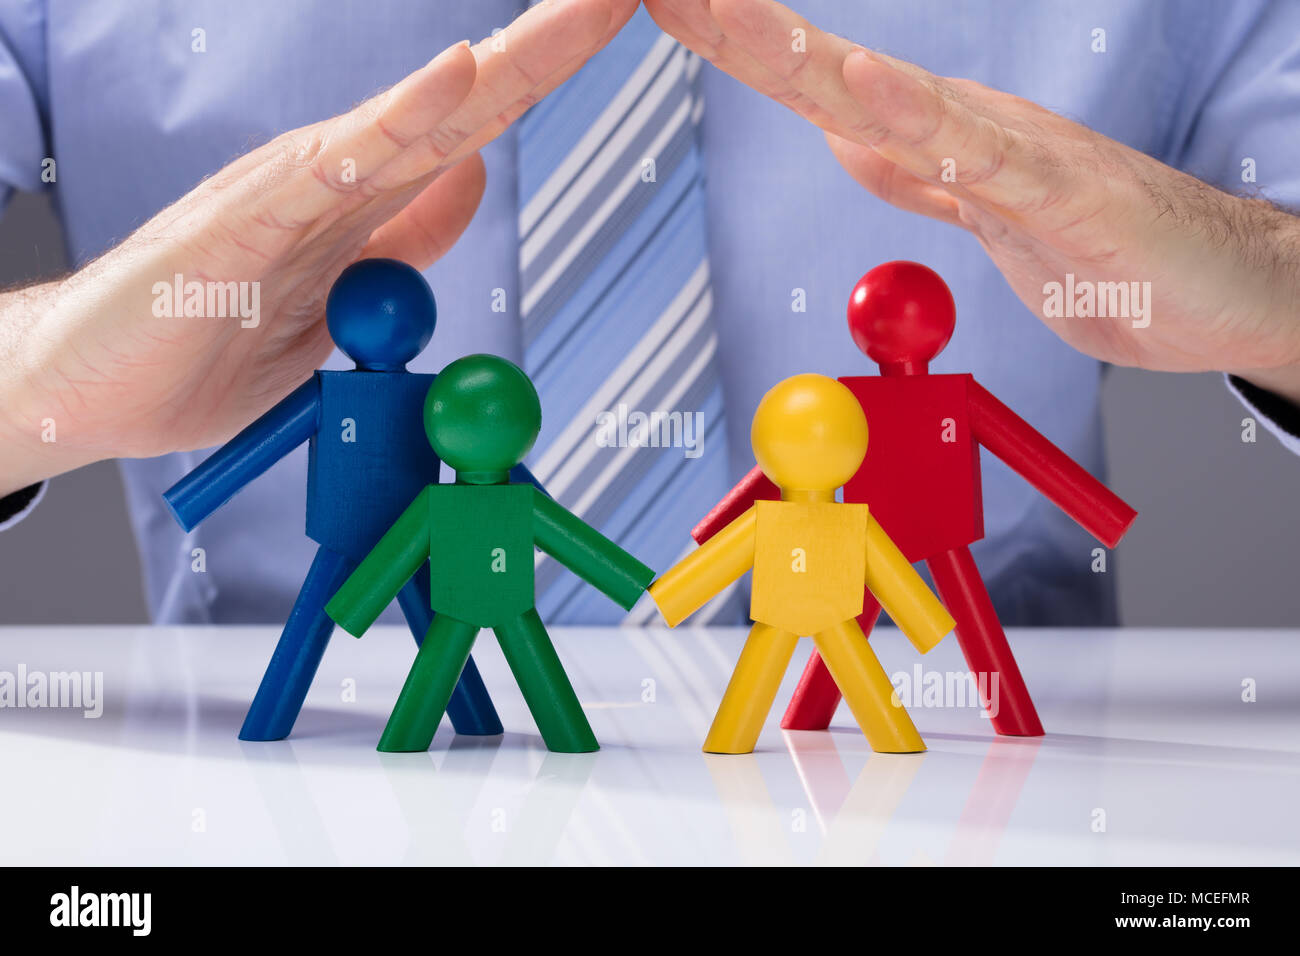 Close-up Of A Human Hand Protecting Multi Colored Human Figures On White Desk Stock Photo